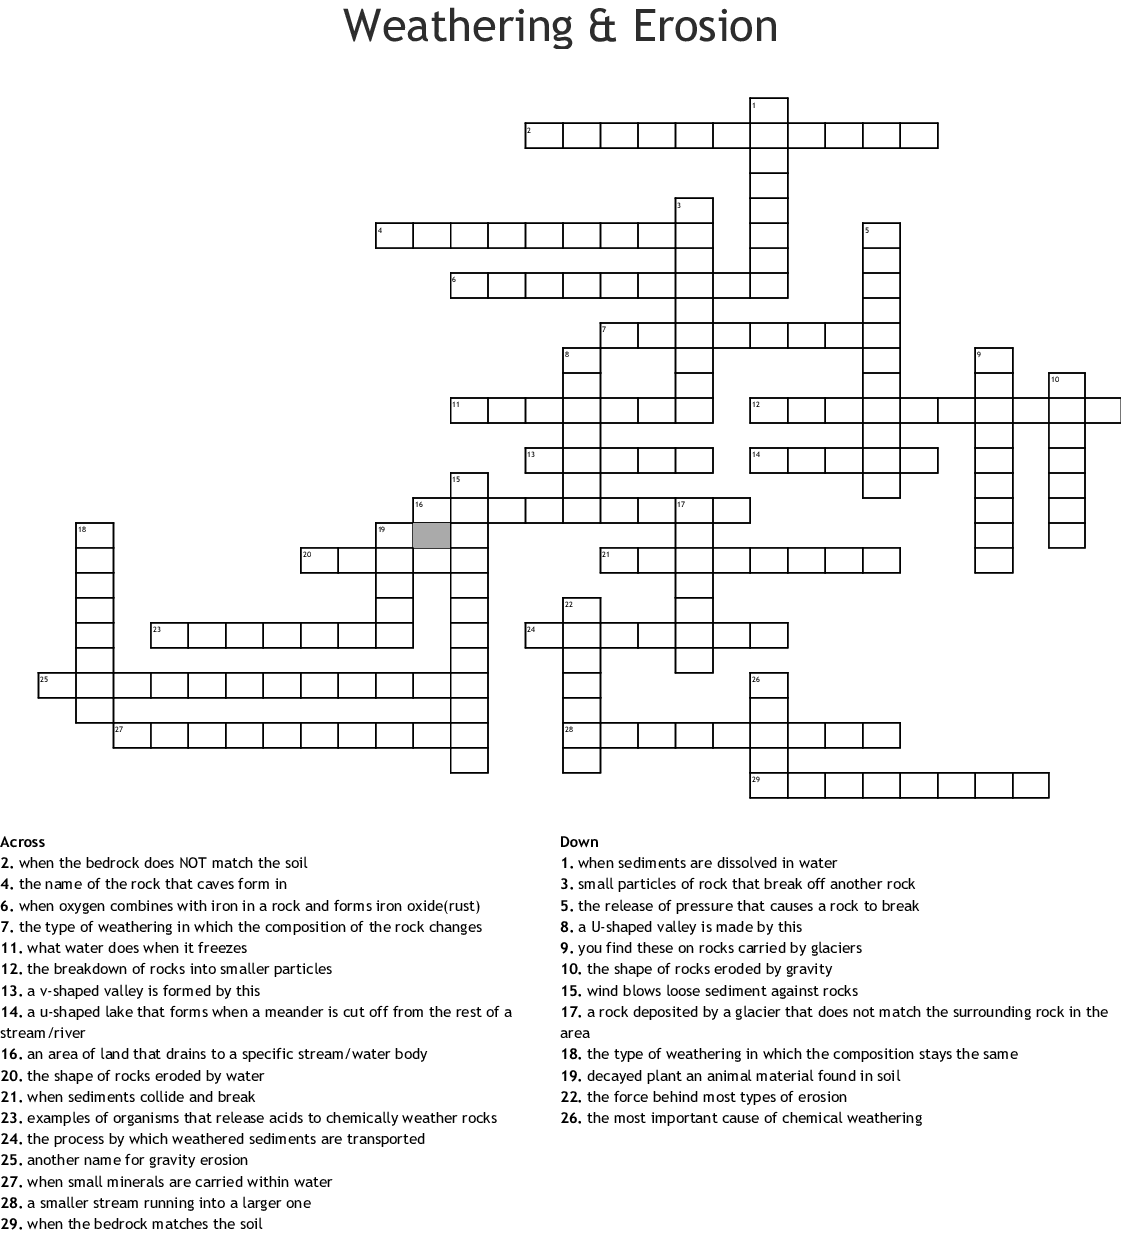 Weathering And Erosion Word Search